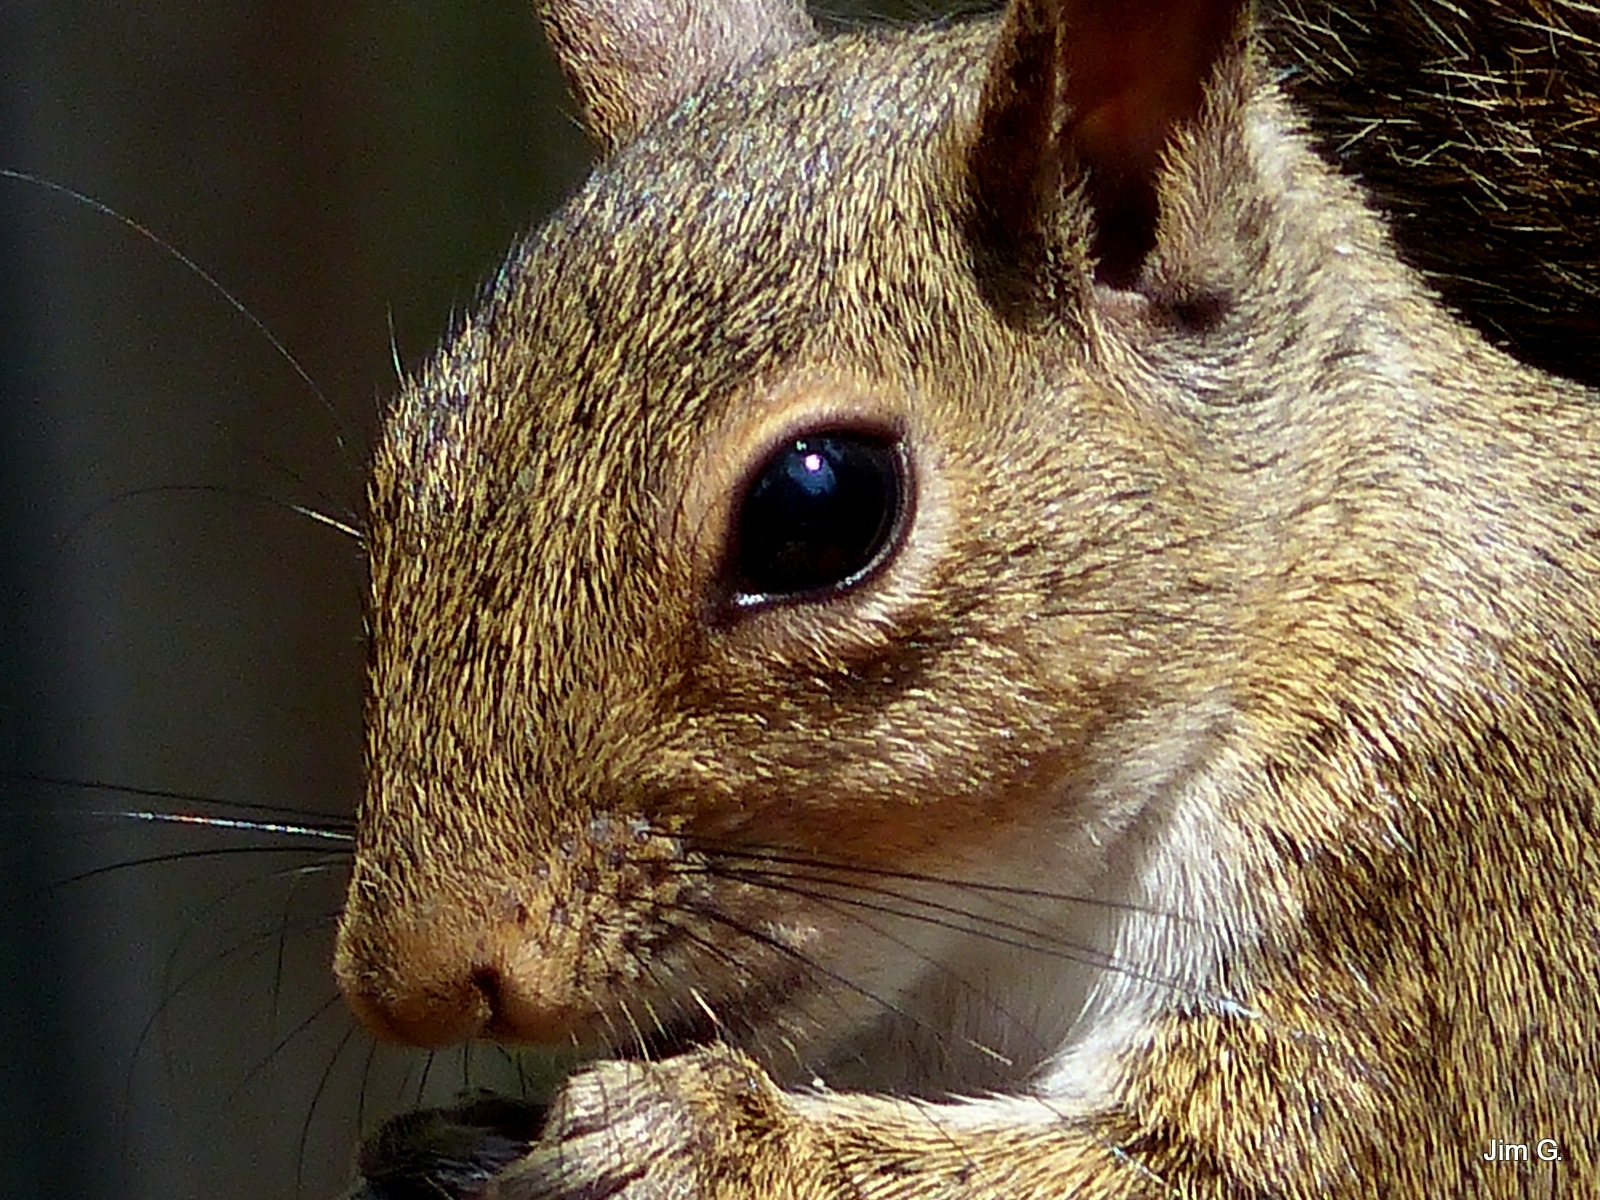 Very close up of A Squirrel 's head by Jim Graham